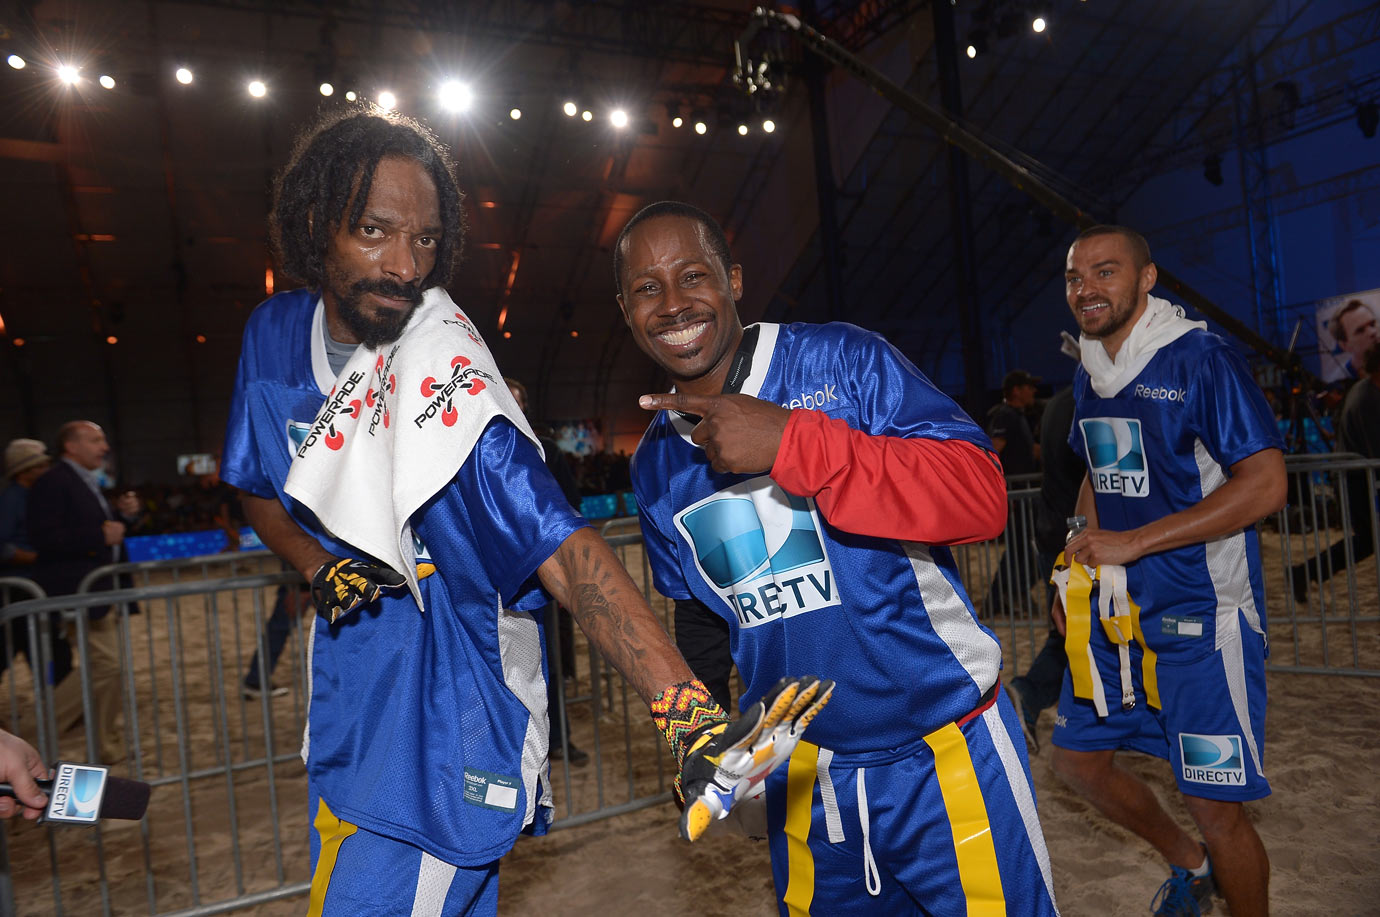 Snoop Dogg, Desmond Howard, and Jesse Williams attend DirecTV'S Seventh Annual Celebrity Beach Bowl on Feb. 2, 2013 at DTV SuperFan Stadium in New Orleans.